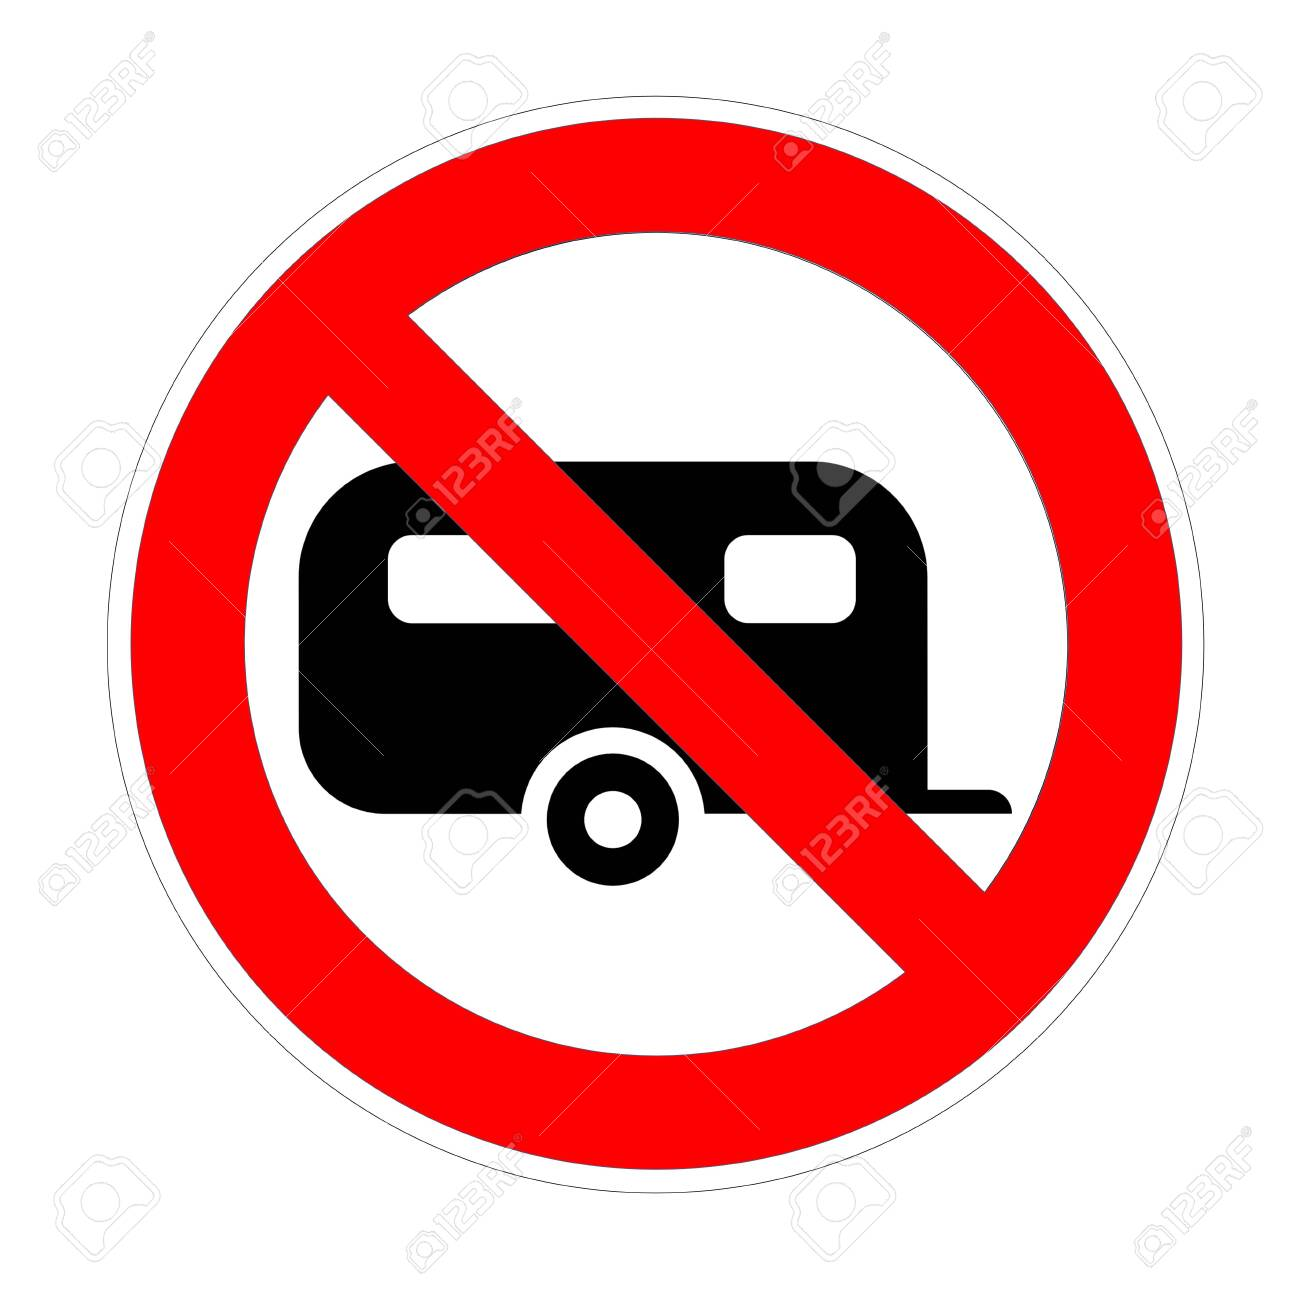 Warning banner no campervan, not allowed recreational vehicule rv symbol, ban caravans and camping car red prohibition sign - 136388147